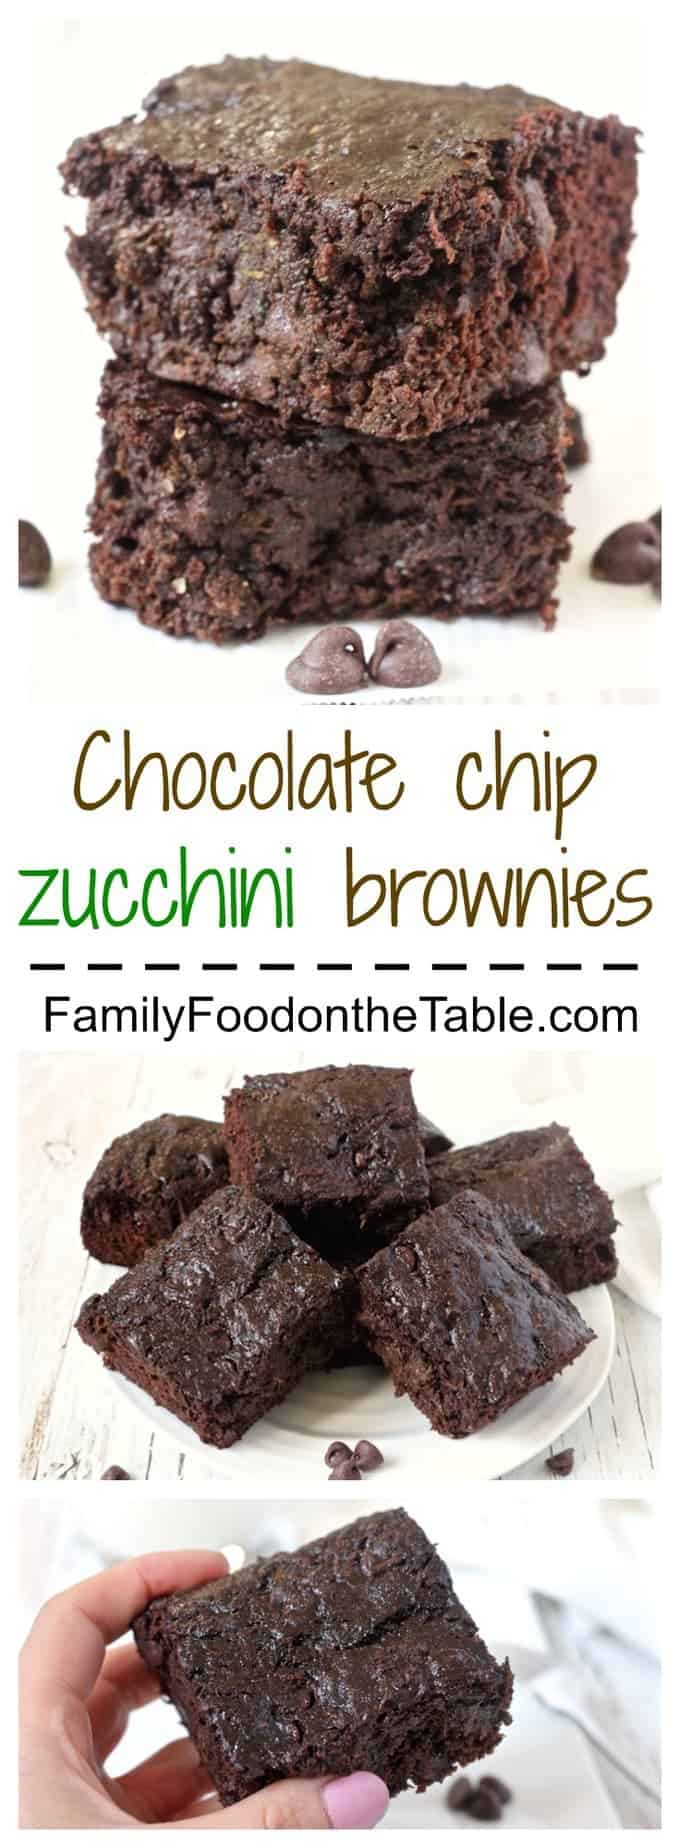 Decadent and delicious (and secretly healthy) chocolate chip zucchini brownies!